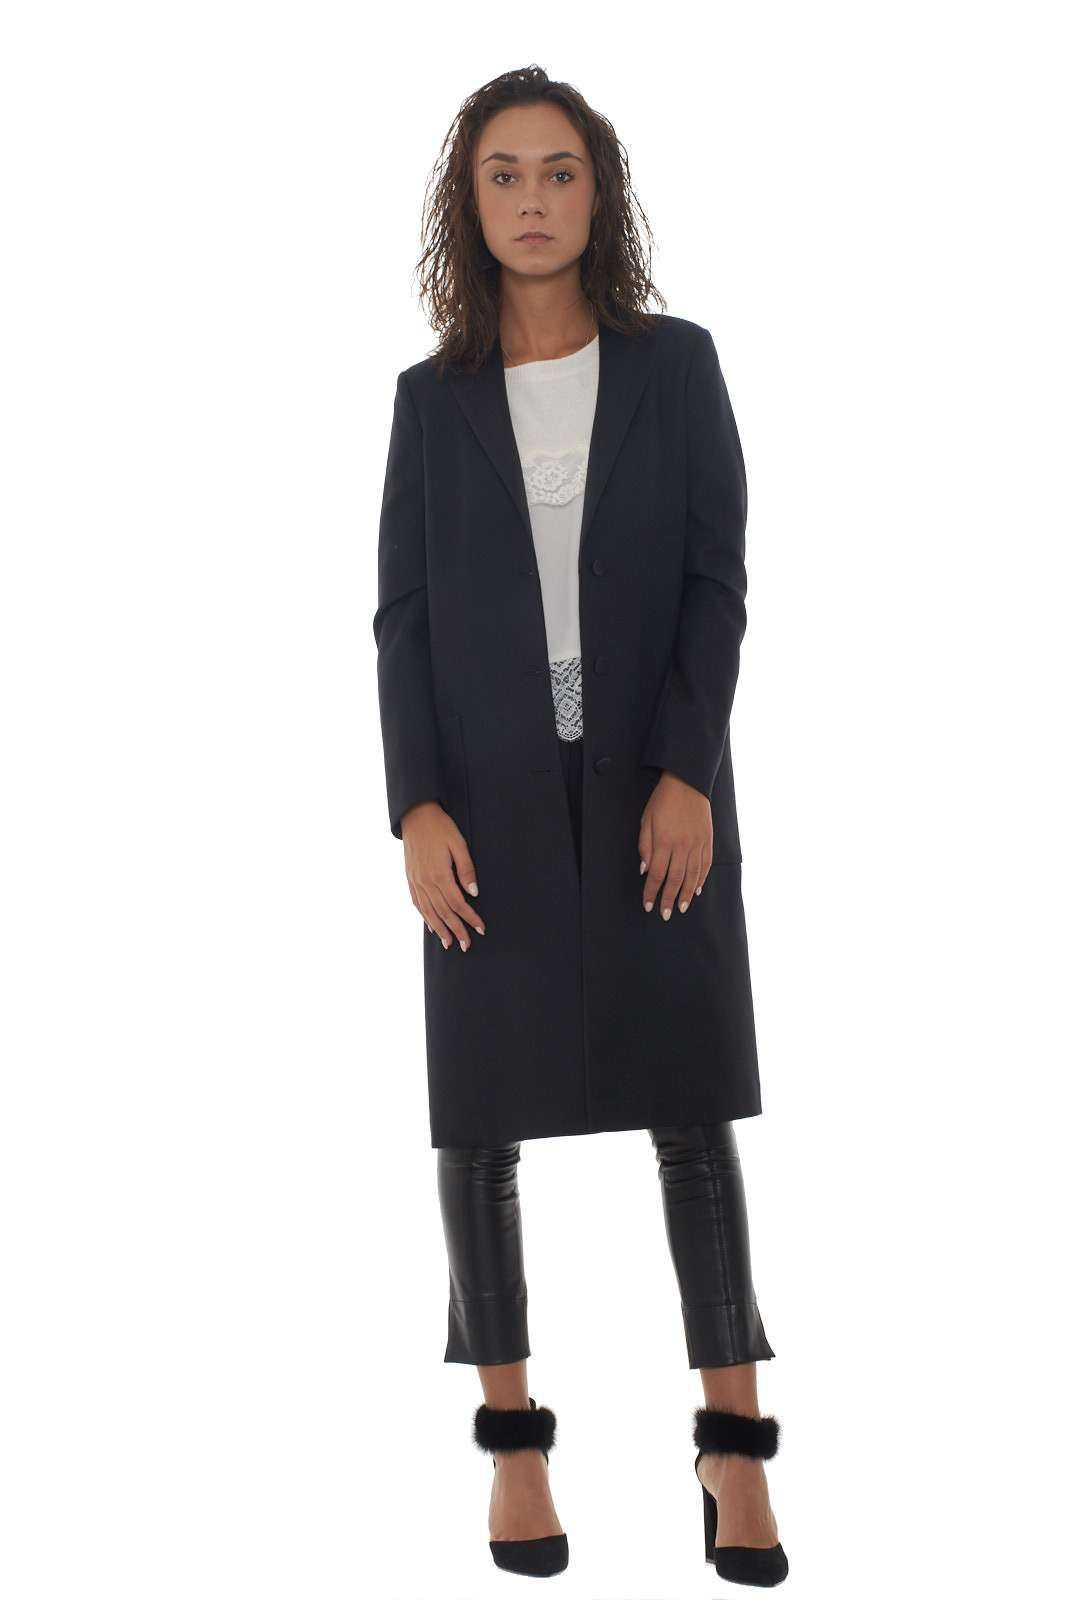 https://www.parmax.com/media/catalog/product/a/i/AI-outlet_parmax-cappotto-donna-Dondup-DJ278%20PX0065D-A.jpg